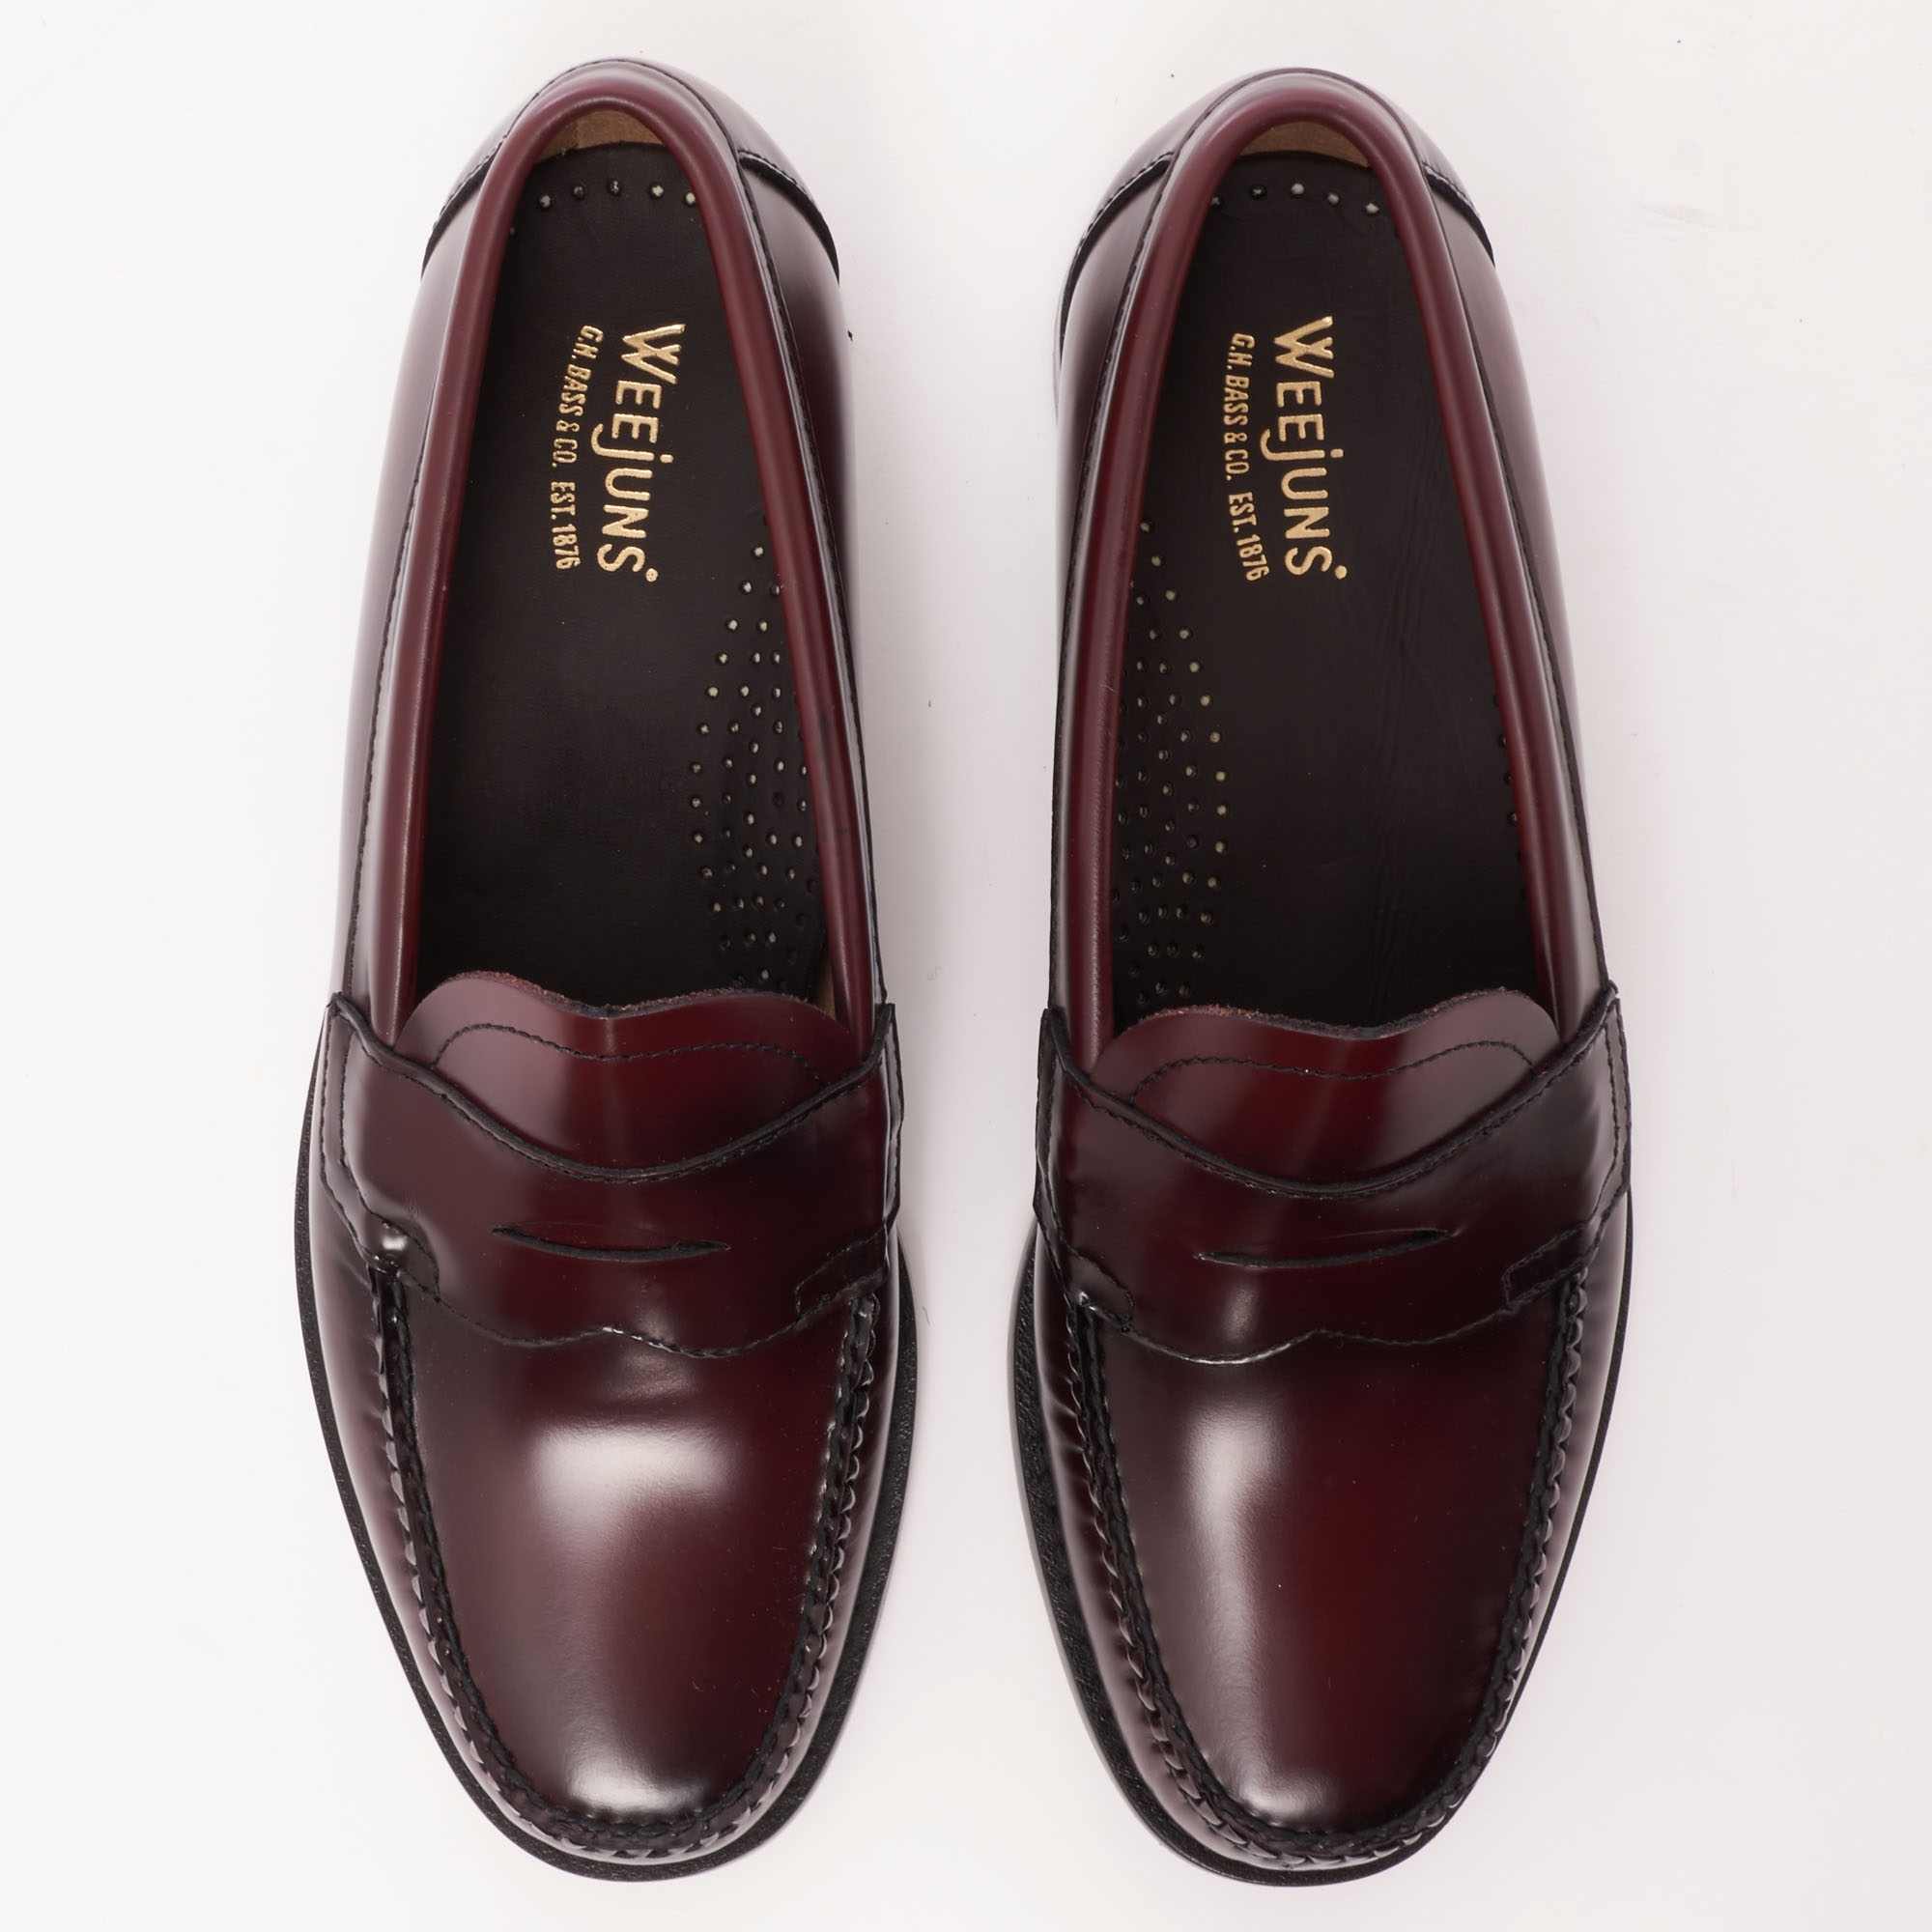 436161856ee Bass Weejuns Logan Polished Leather Loafer (Wine) at Dandy Fellow